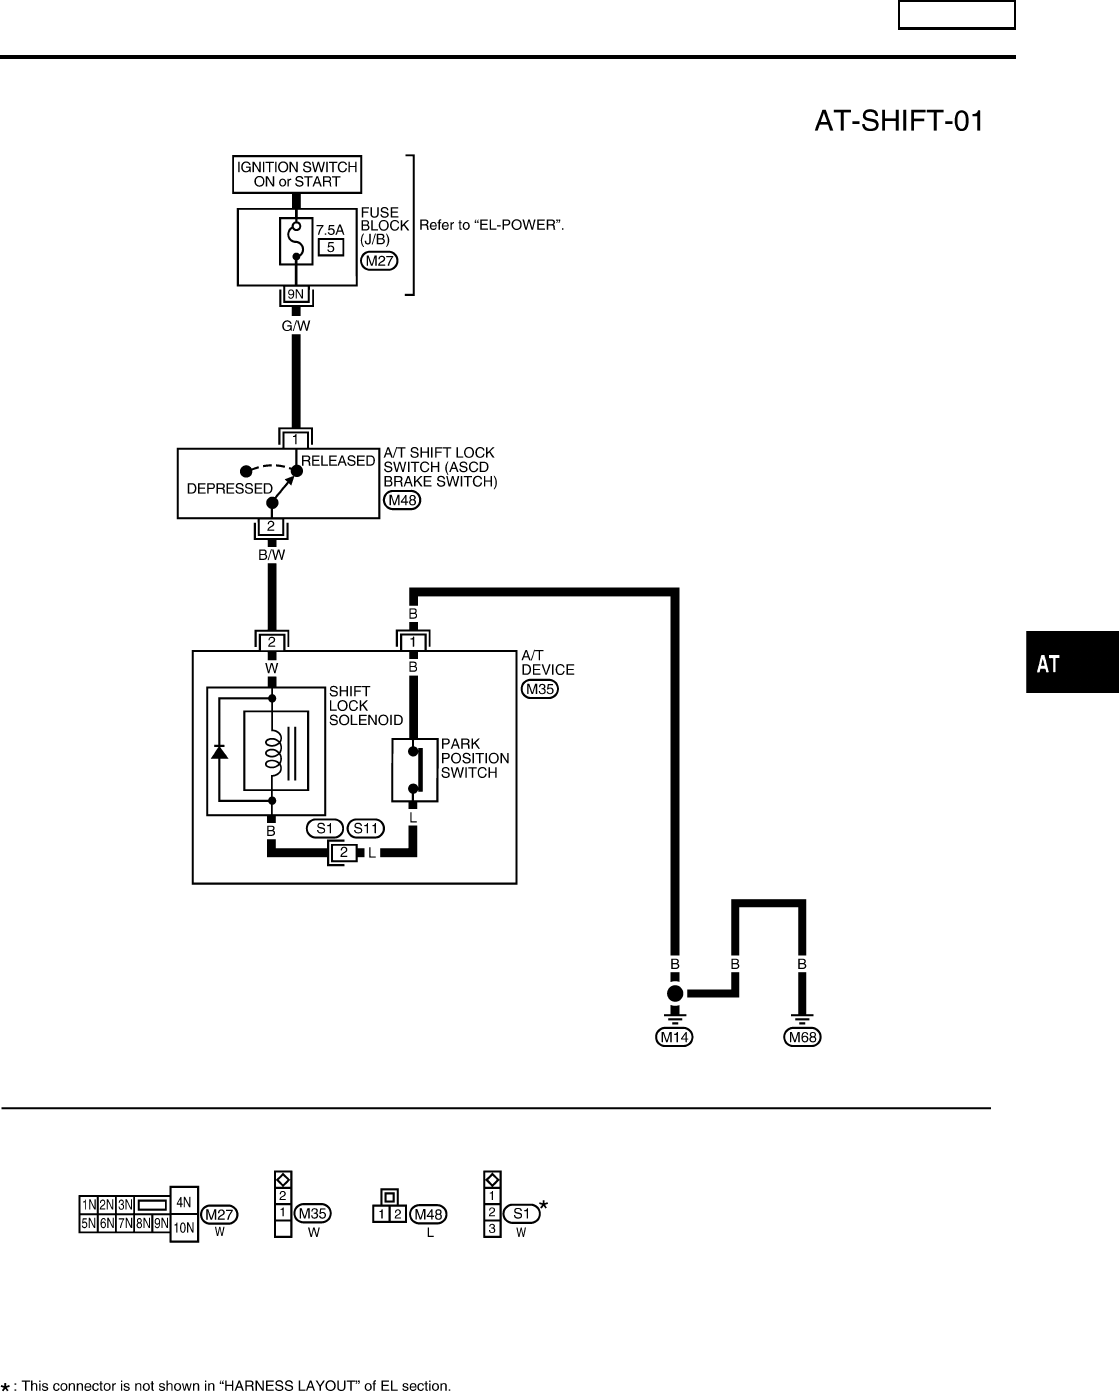 M27 Wiring Diagram Reinvent Your Basic Automotive Product Detail Manual At Rh Usermanual Wiki 3 Way Switch Hvac Diagrams